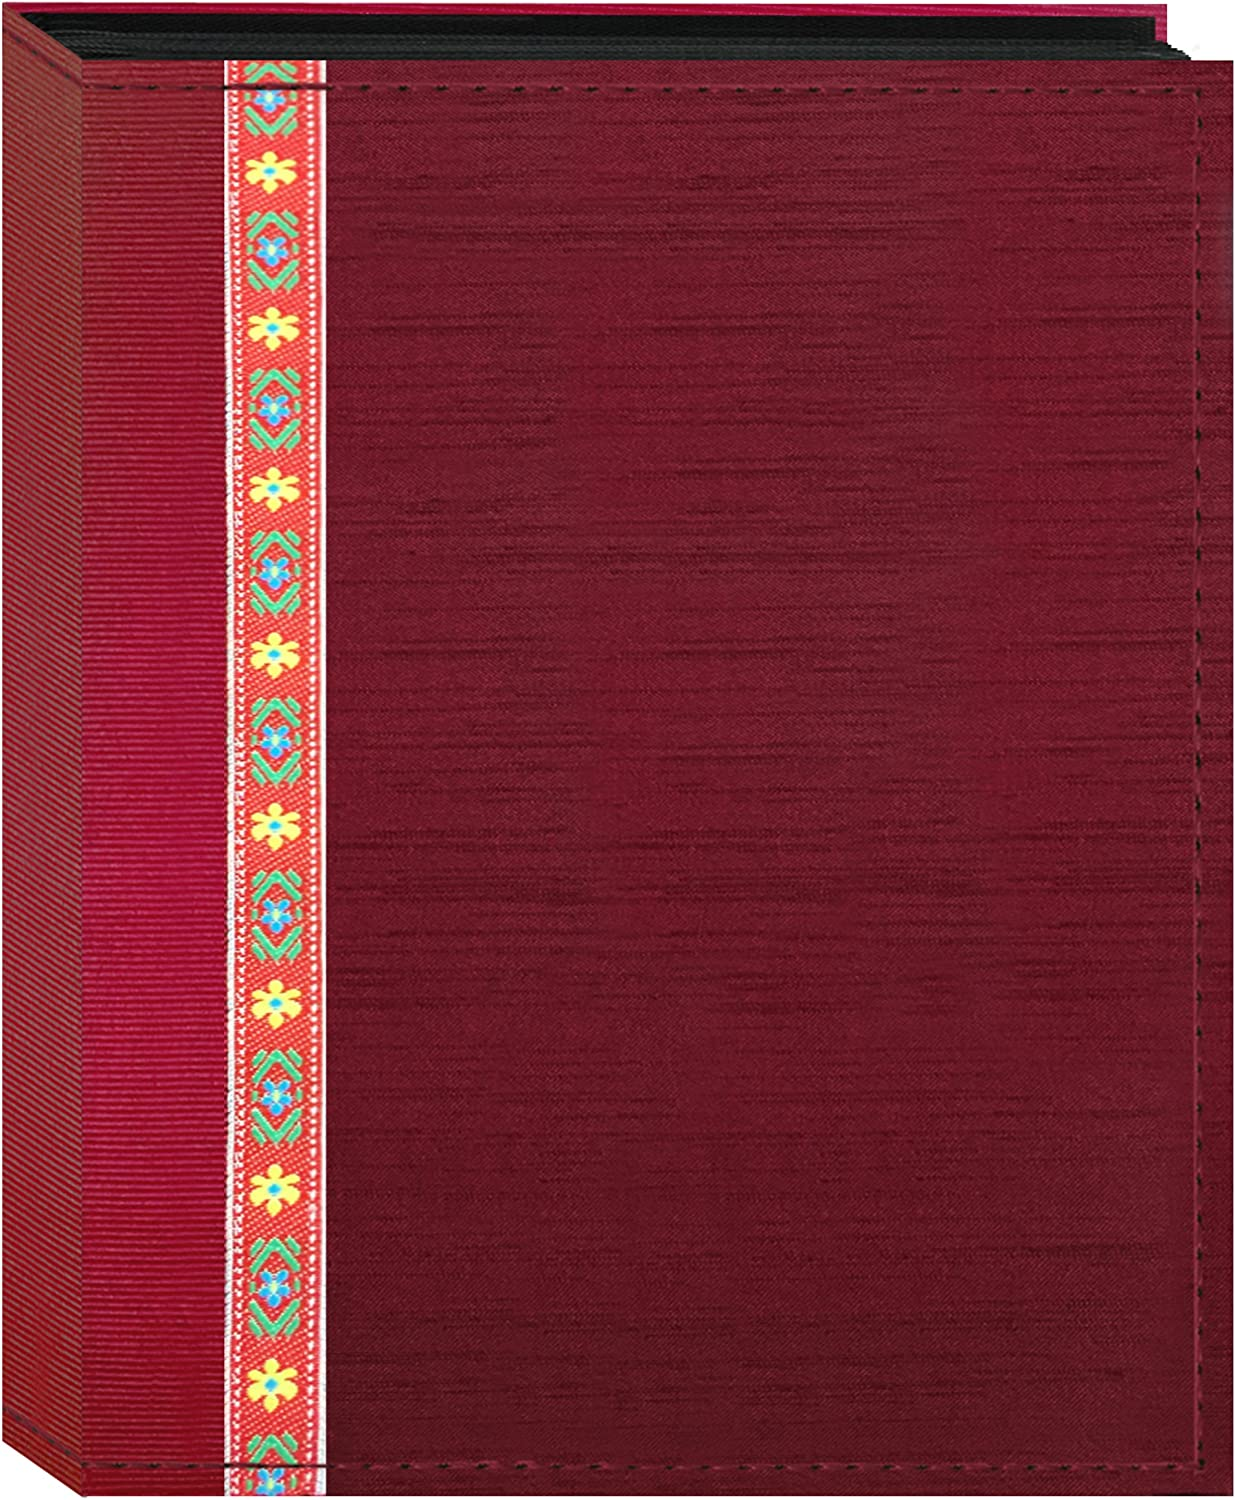 Fabric Ribbon Cover Photo Album 100 Pockets Hold 4x6 Photos, Red